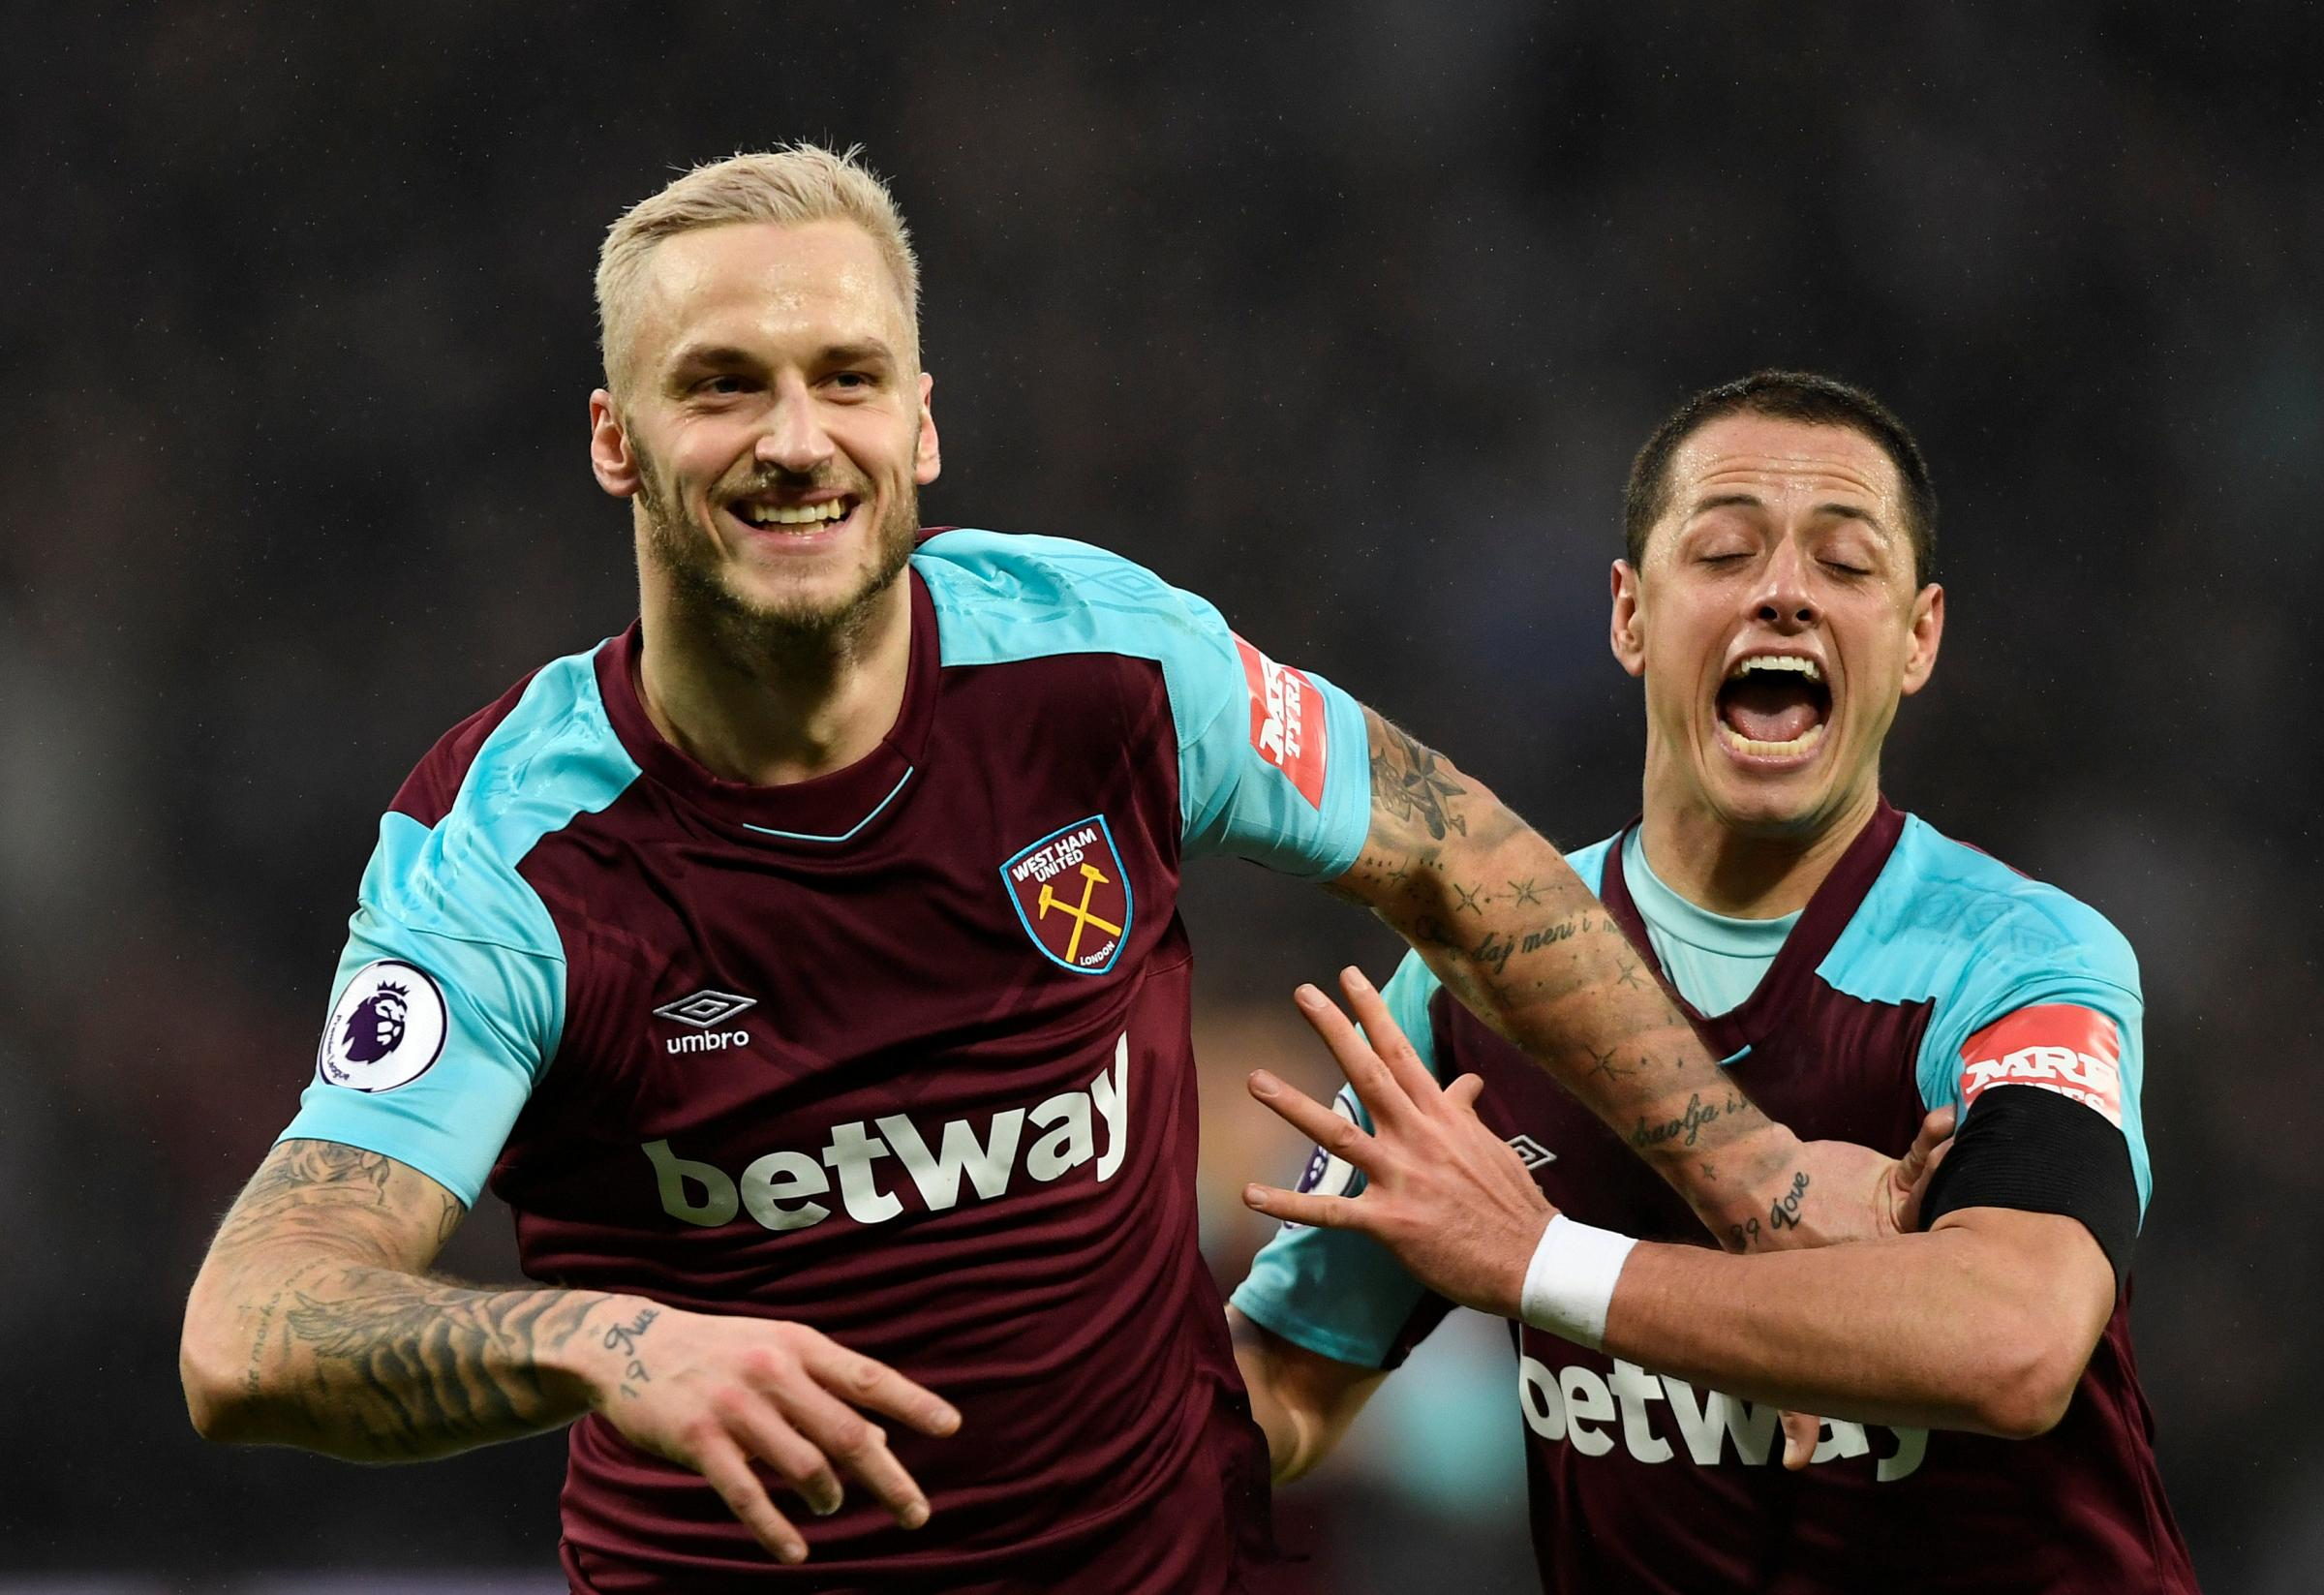 The two scorers celebrate: Marko Arnautovic and Javier Hernandez were both on target in the win. Picture: Action Images